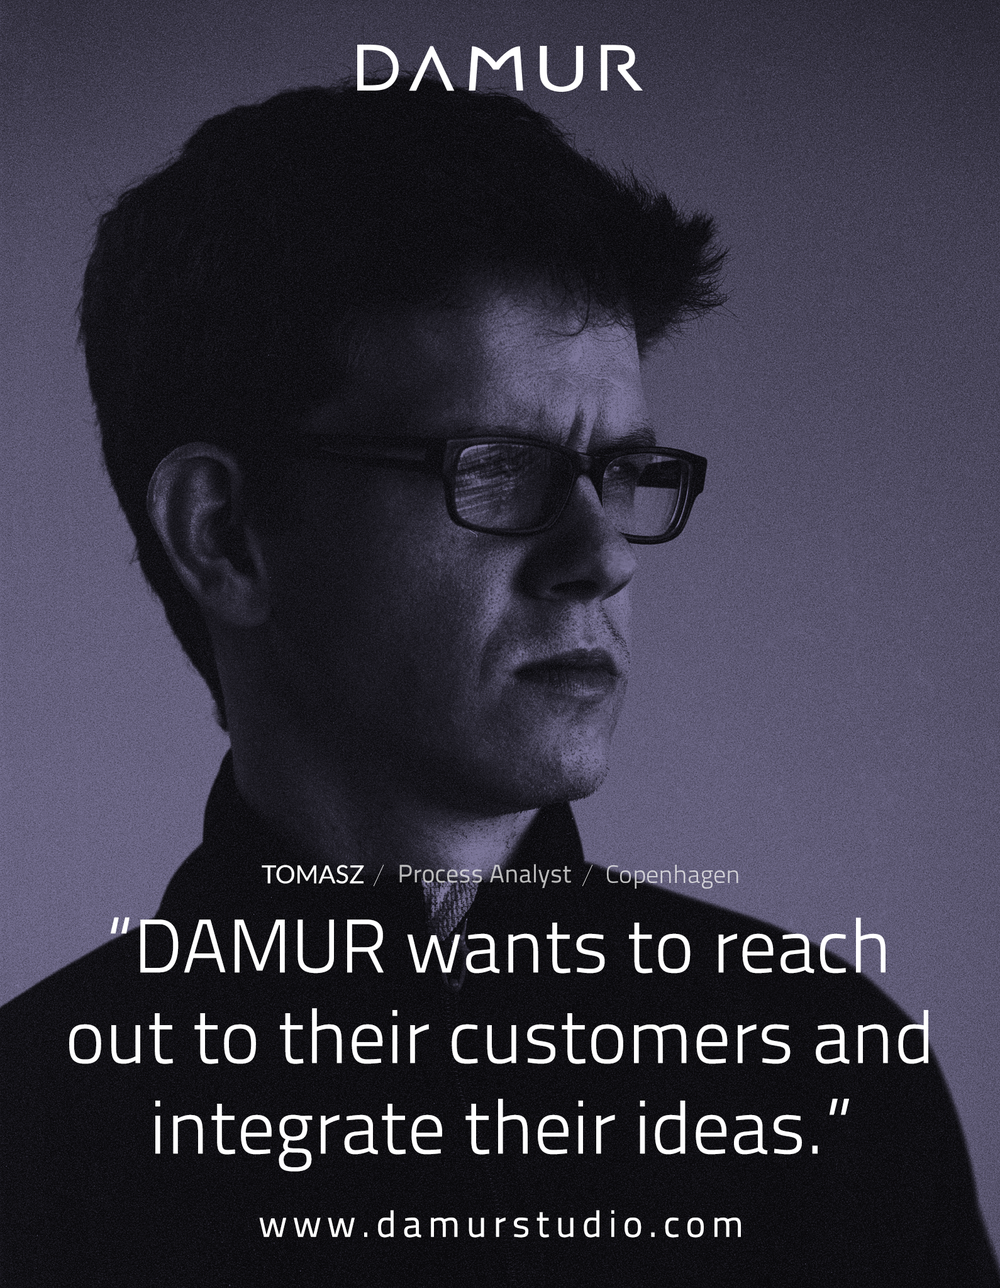 DAMUR wants to reach out to their customers and integrate their ideas! Find out more via www.damurstudio.com #DAMUR #damurstudio #SurrealPragmatism #Fashion #Mode #Teamwork #Creative #New #Berlin #Taipei #Copenhagen #Paris #Munich #NewYork #Menswear #Womenswear #Accessory #Happy #GoodEnergy #Positive #Brainstorming #International #StartUp #Crowdfunding #Design #kisskissbankbank #Functional #FundRaising #People #Idea